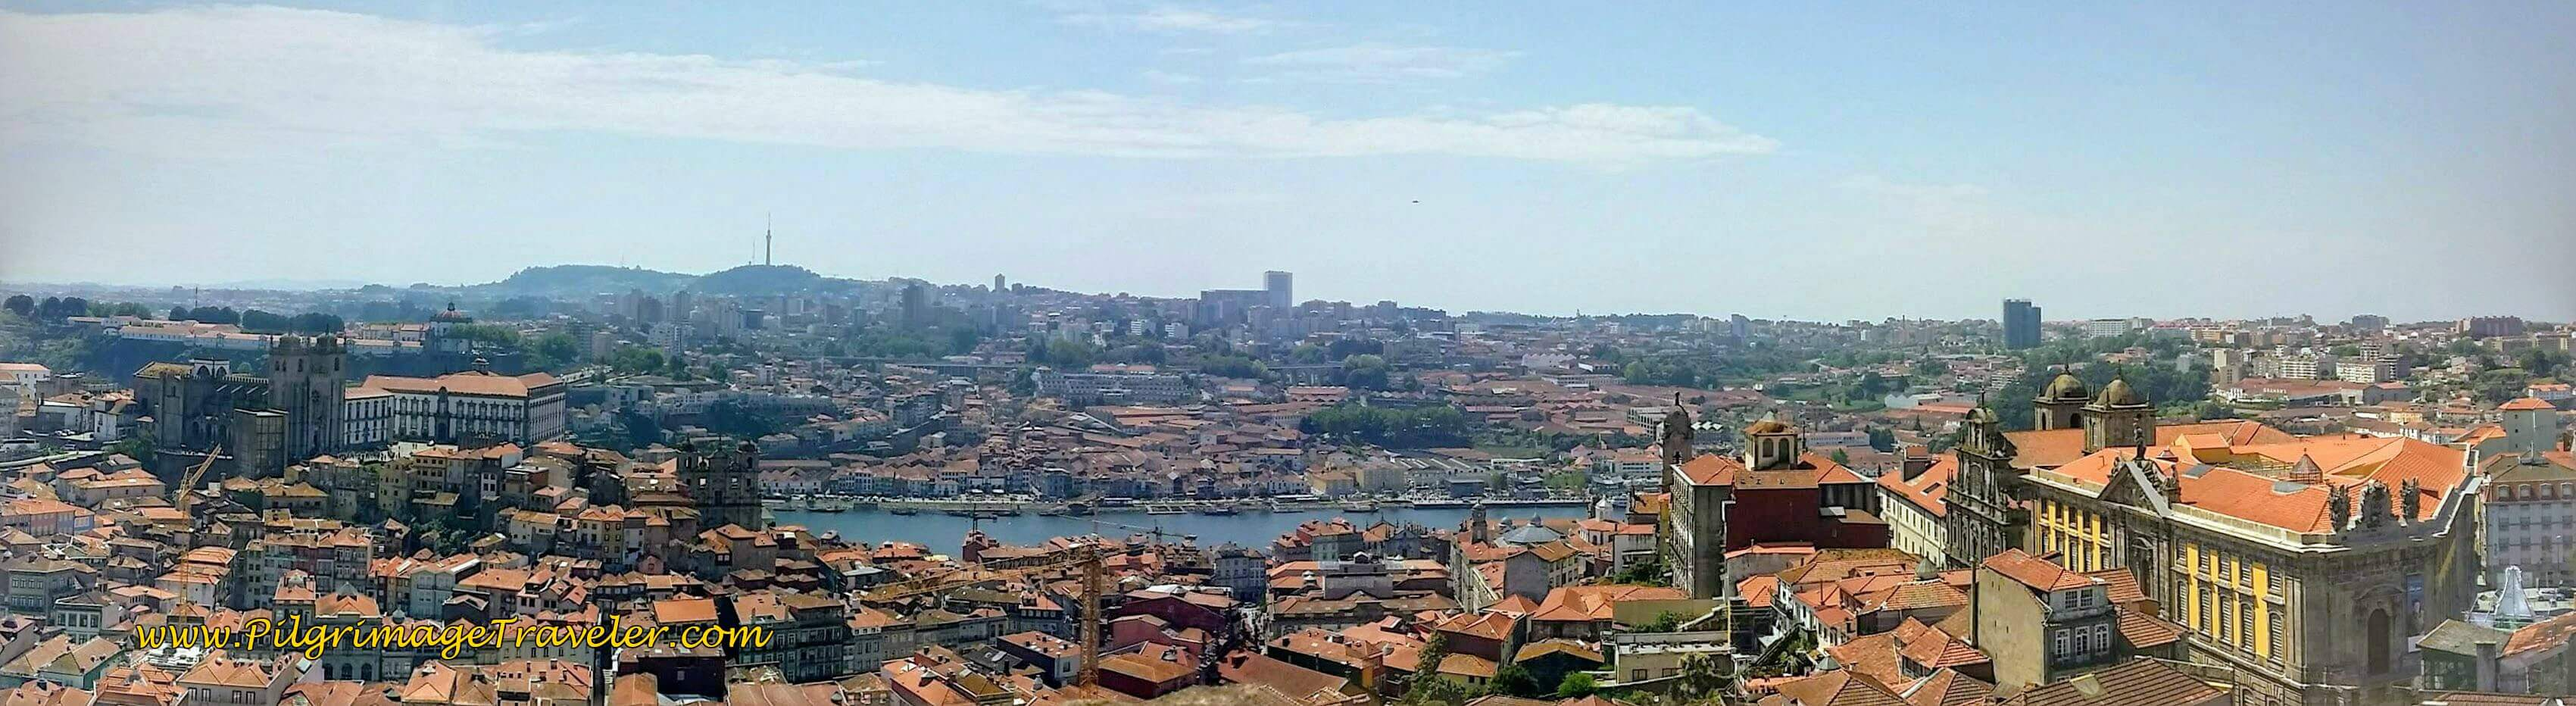 Panoramic View to the South from the Clérigos Tower in Porto, Portugal